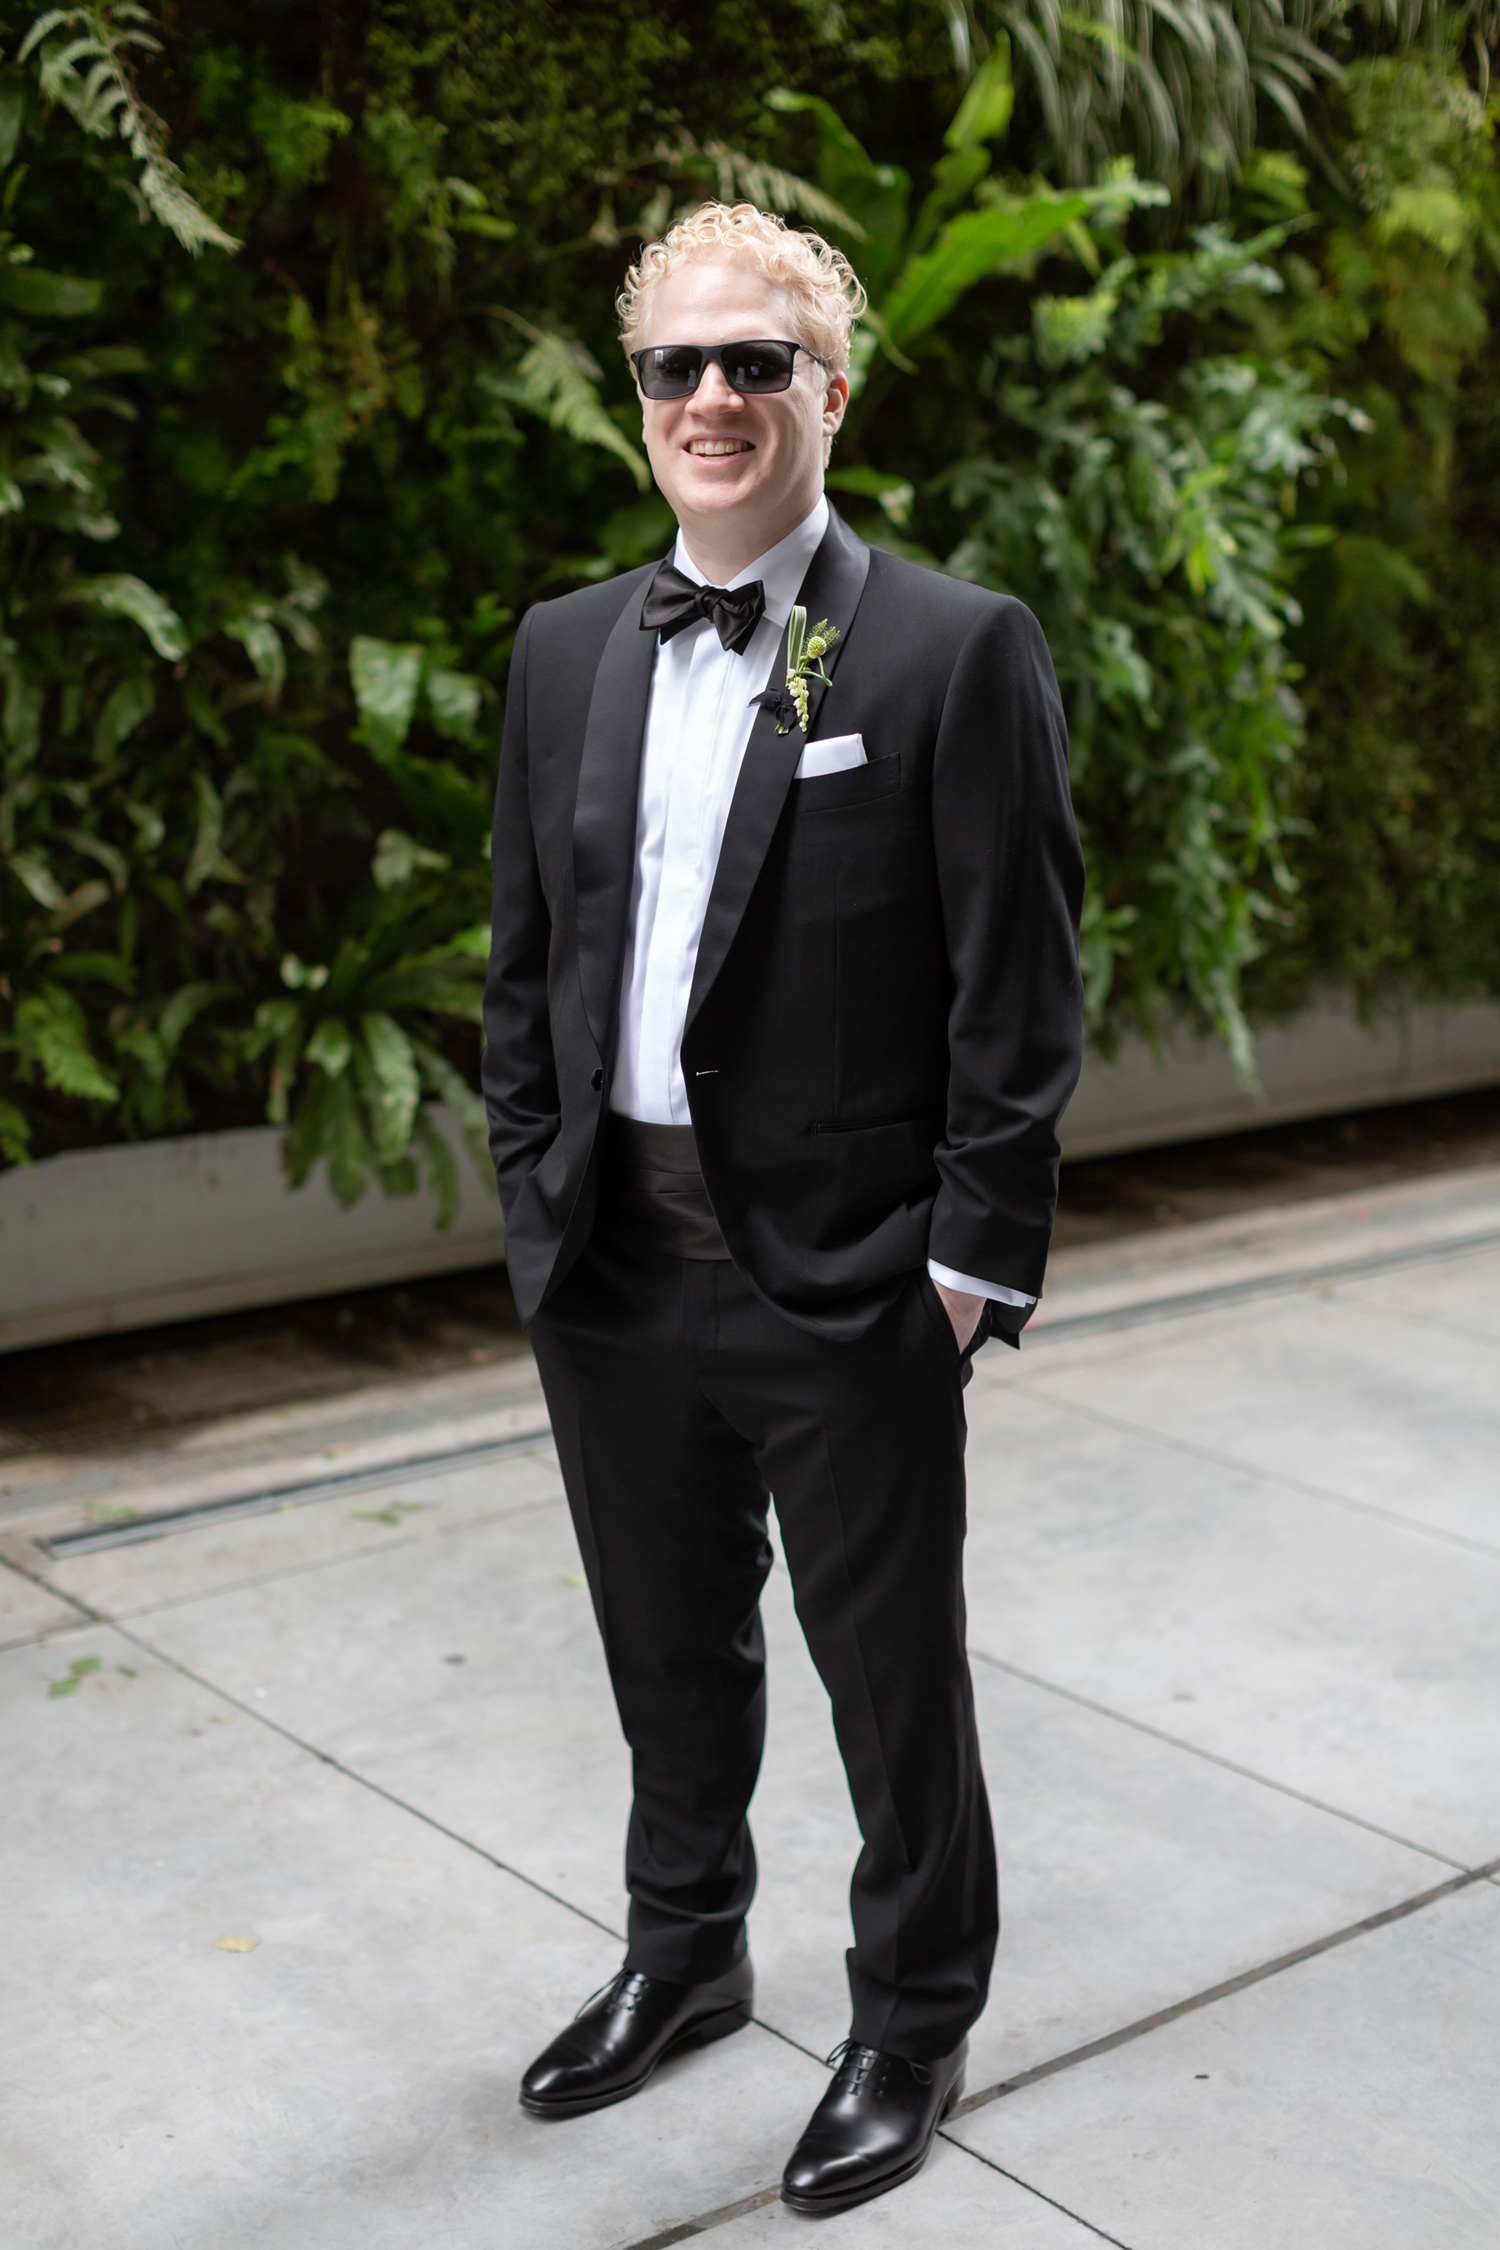 sfmoma-wedding-photography-preview-lilouette-05.jpg